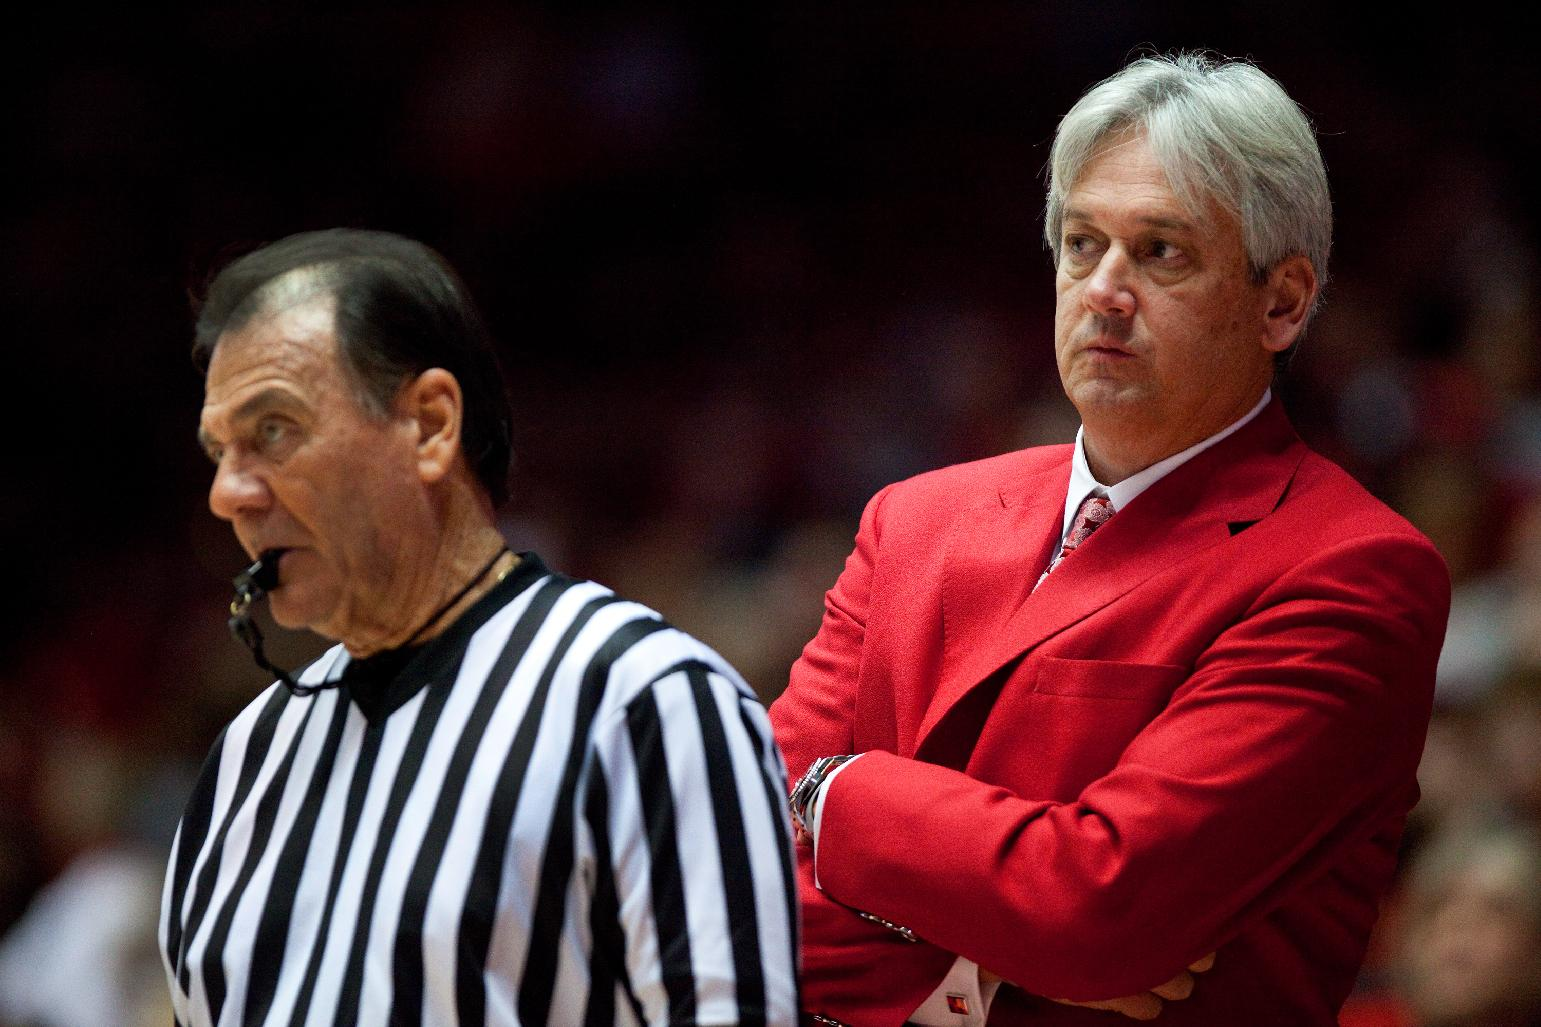 New Mexico head basketball coach Craig Neal watches the action from the sideline against Alabama A&M in the second half of an NCAA basketball game in Albuquerque, N.M., Saturday, Nov. 9, 2013. New Mexico won 88-52